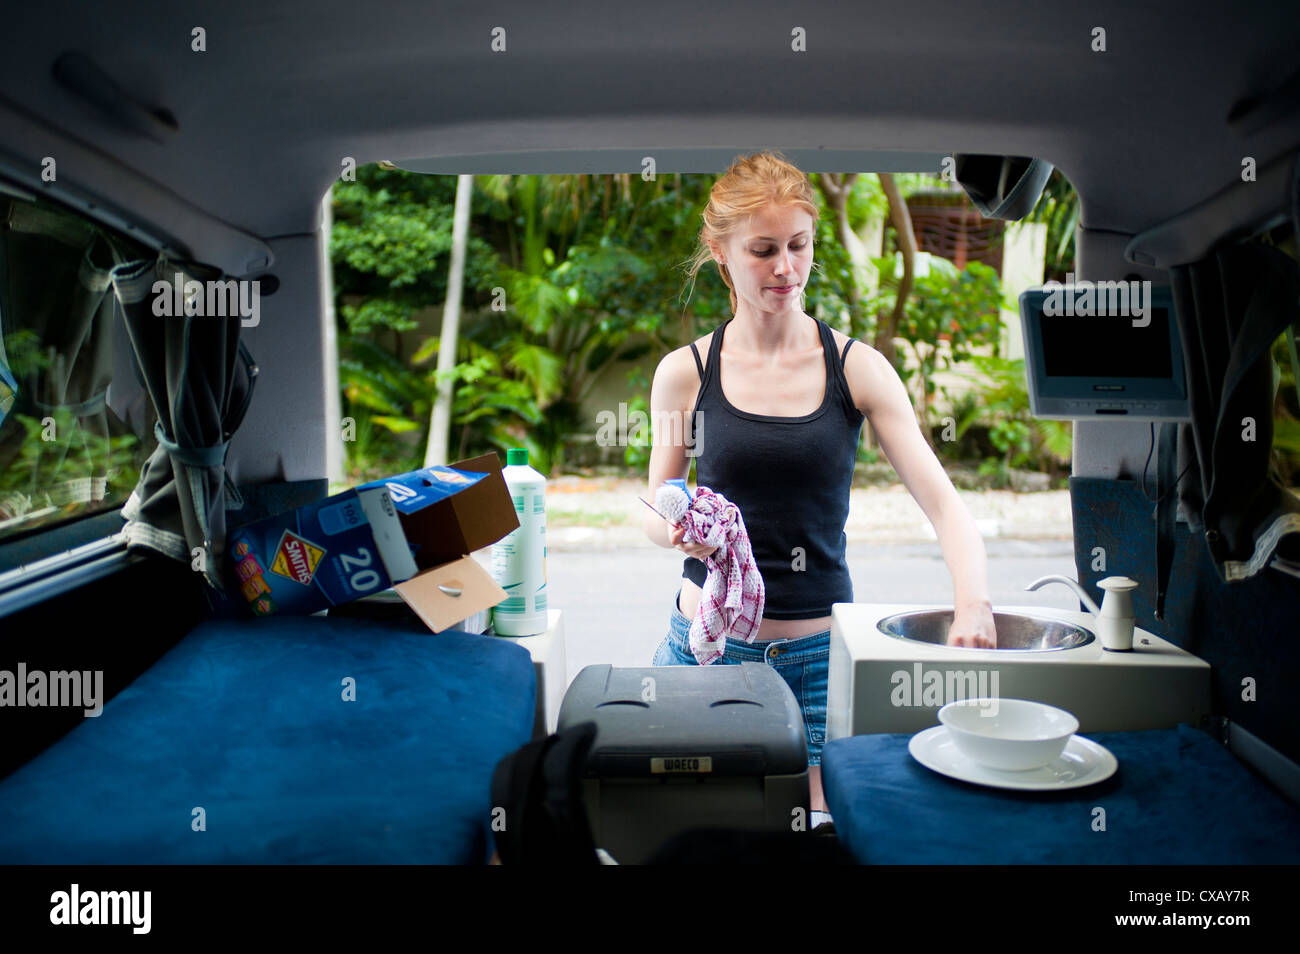 Woman washing up in a campervan, Byron Bay, New South Wales, Australia, Pacific - Stock Image